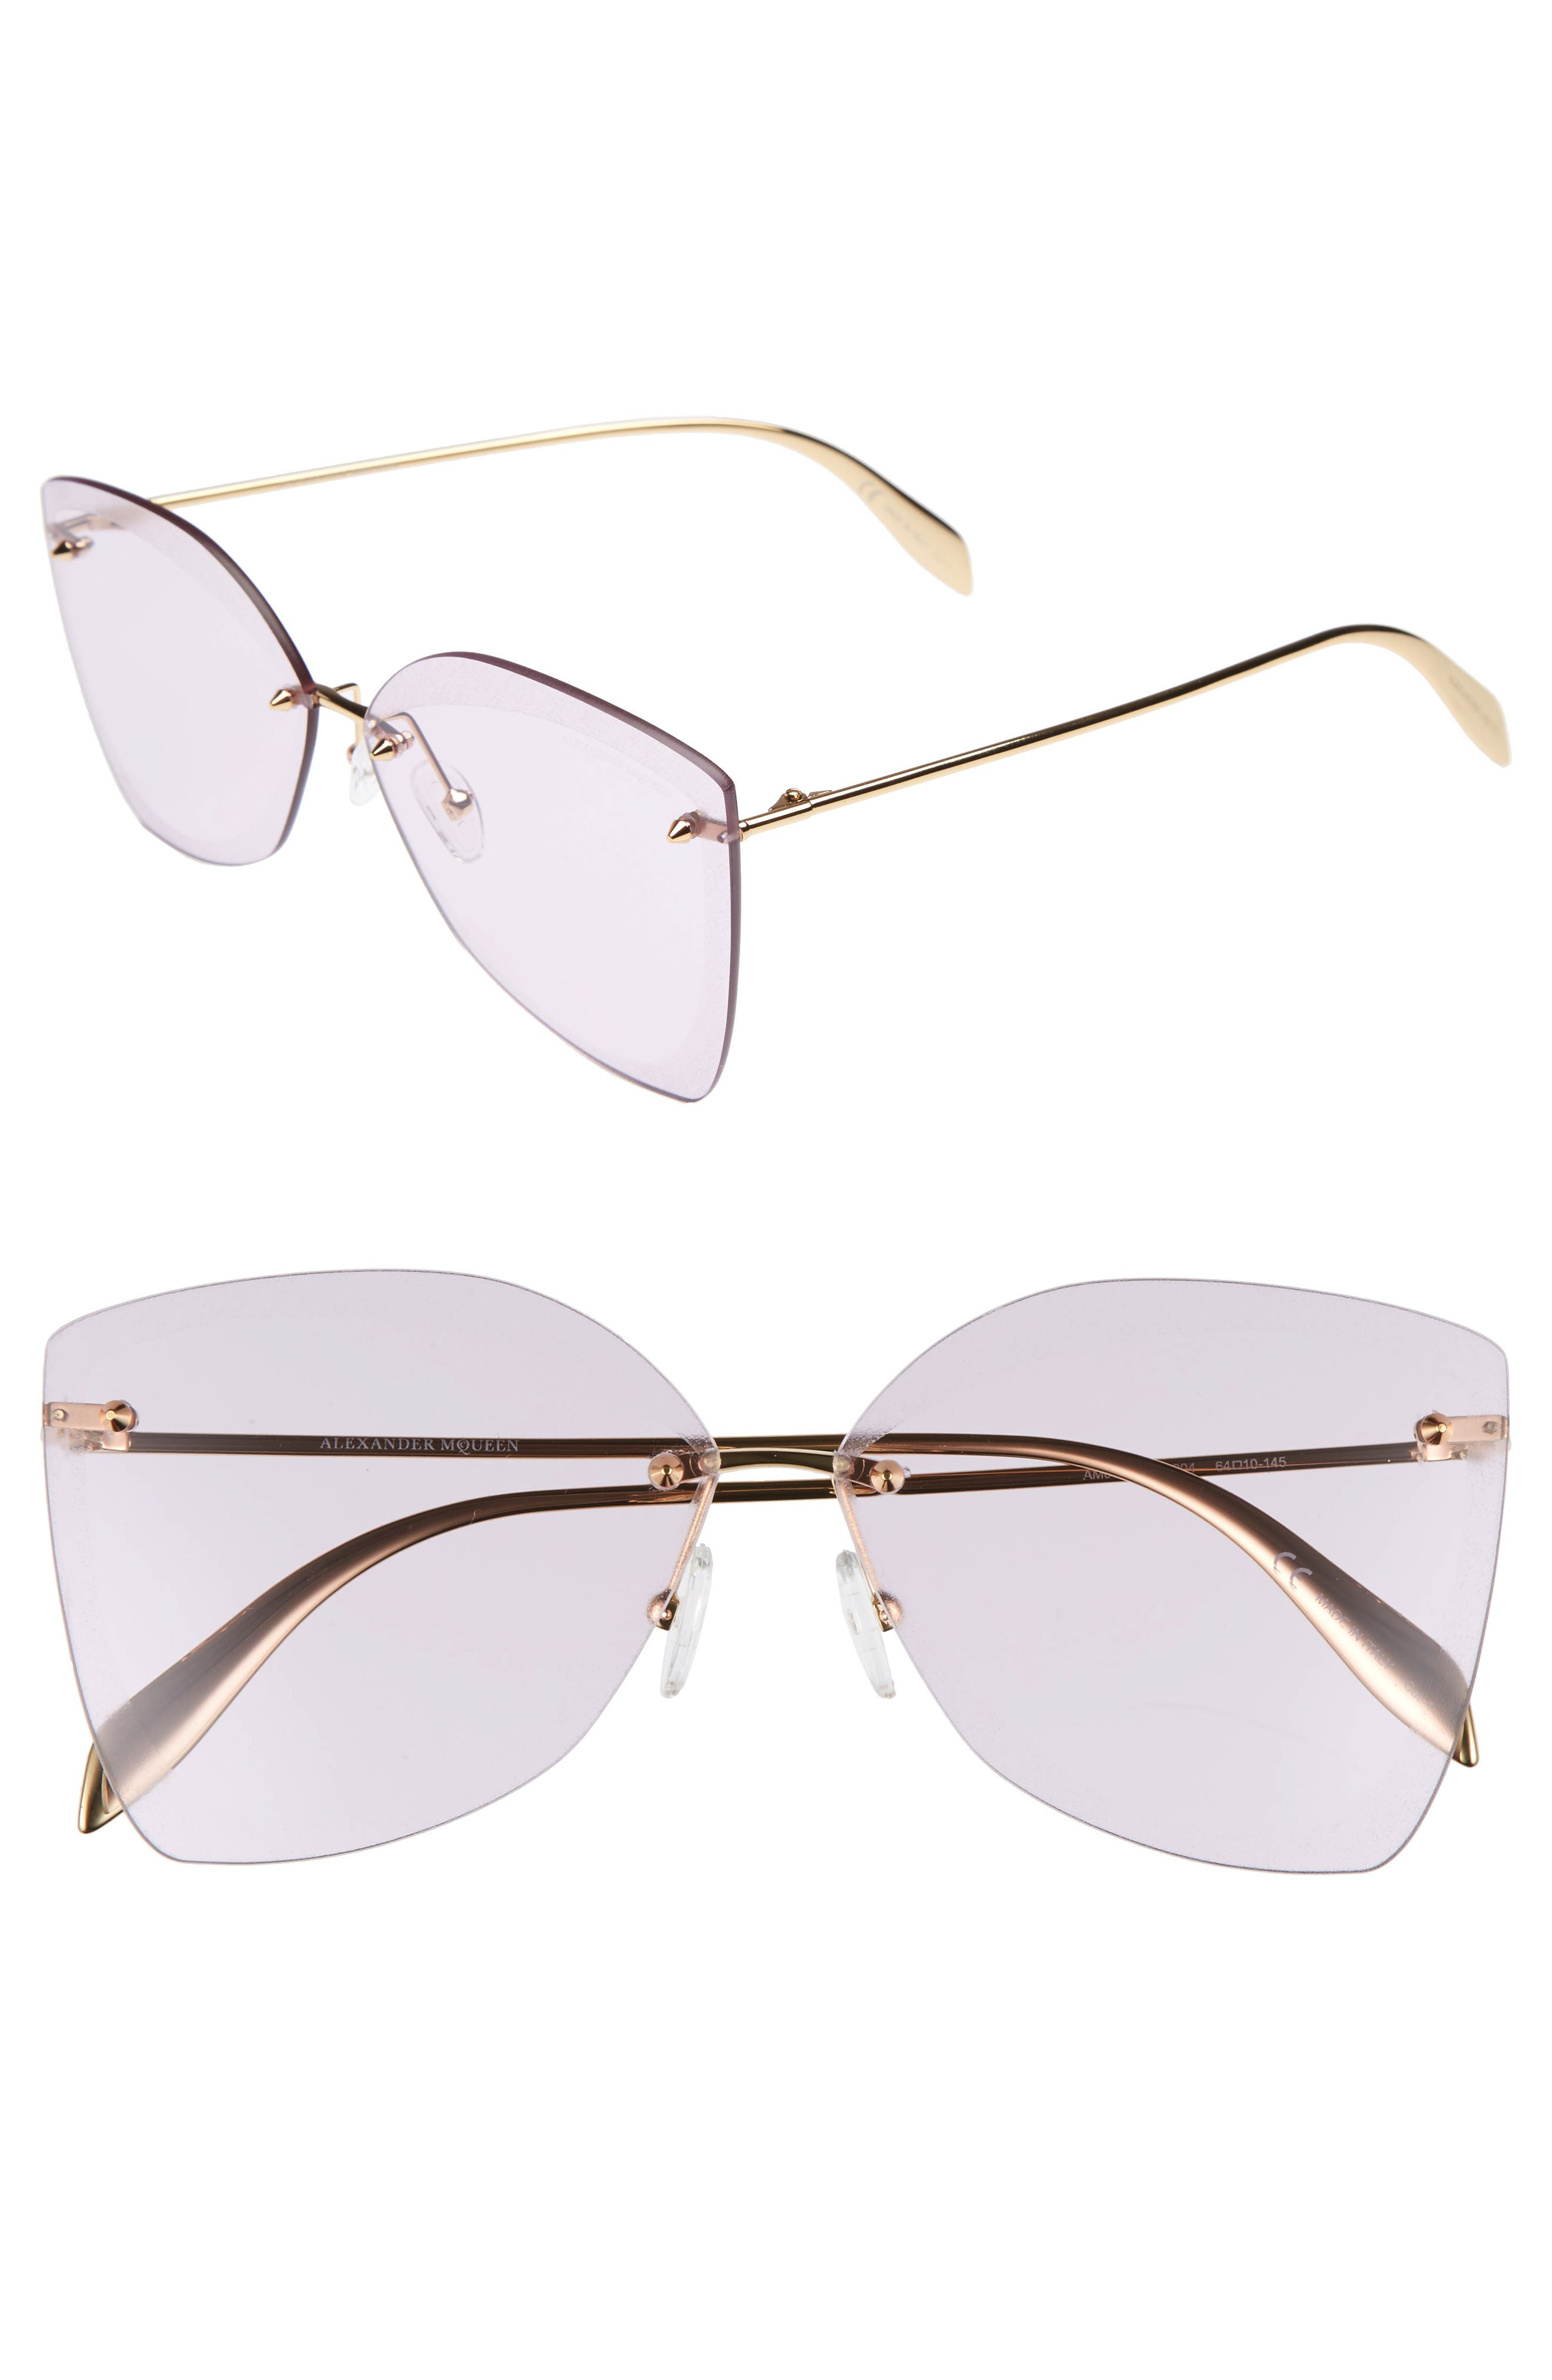 64mm Oversize Rimless Sunglasses,                         Main,                         color, Gold